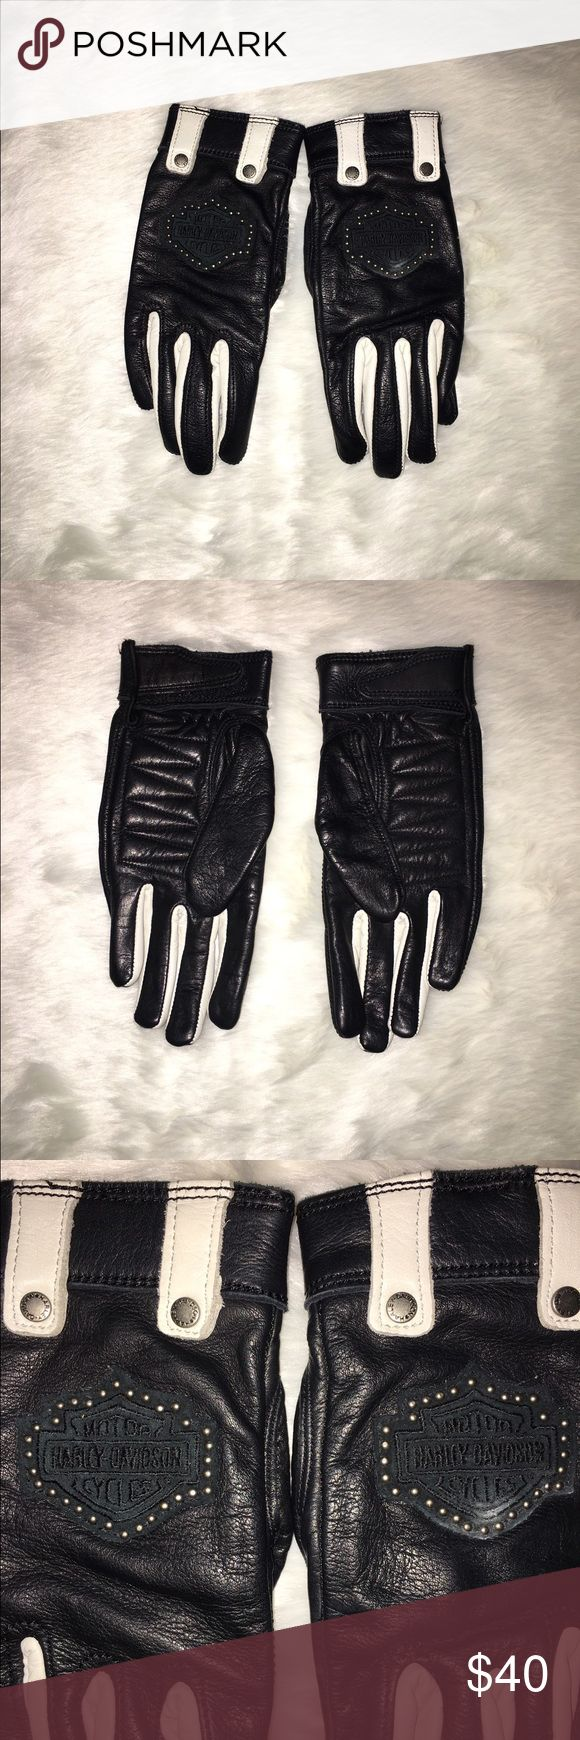 Ladies leather gloves xs - Harley Davidson Leather Gloves